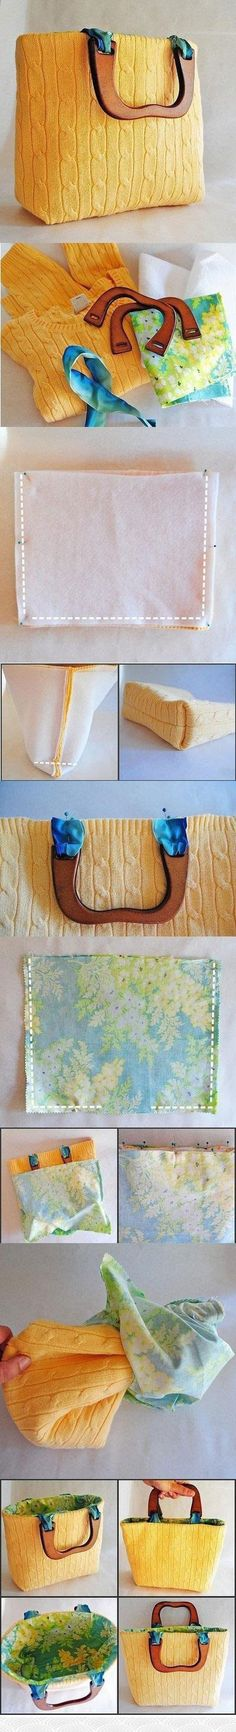 DIY repurposed sweater tote! . Not sure it could get much cuter!